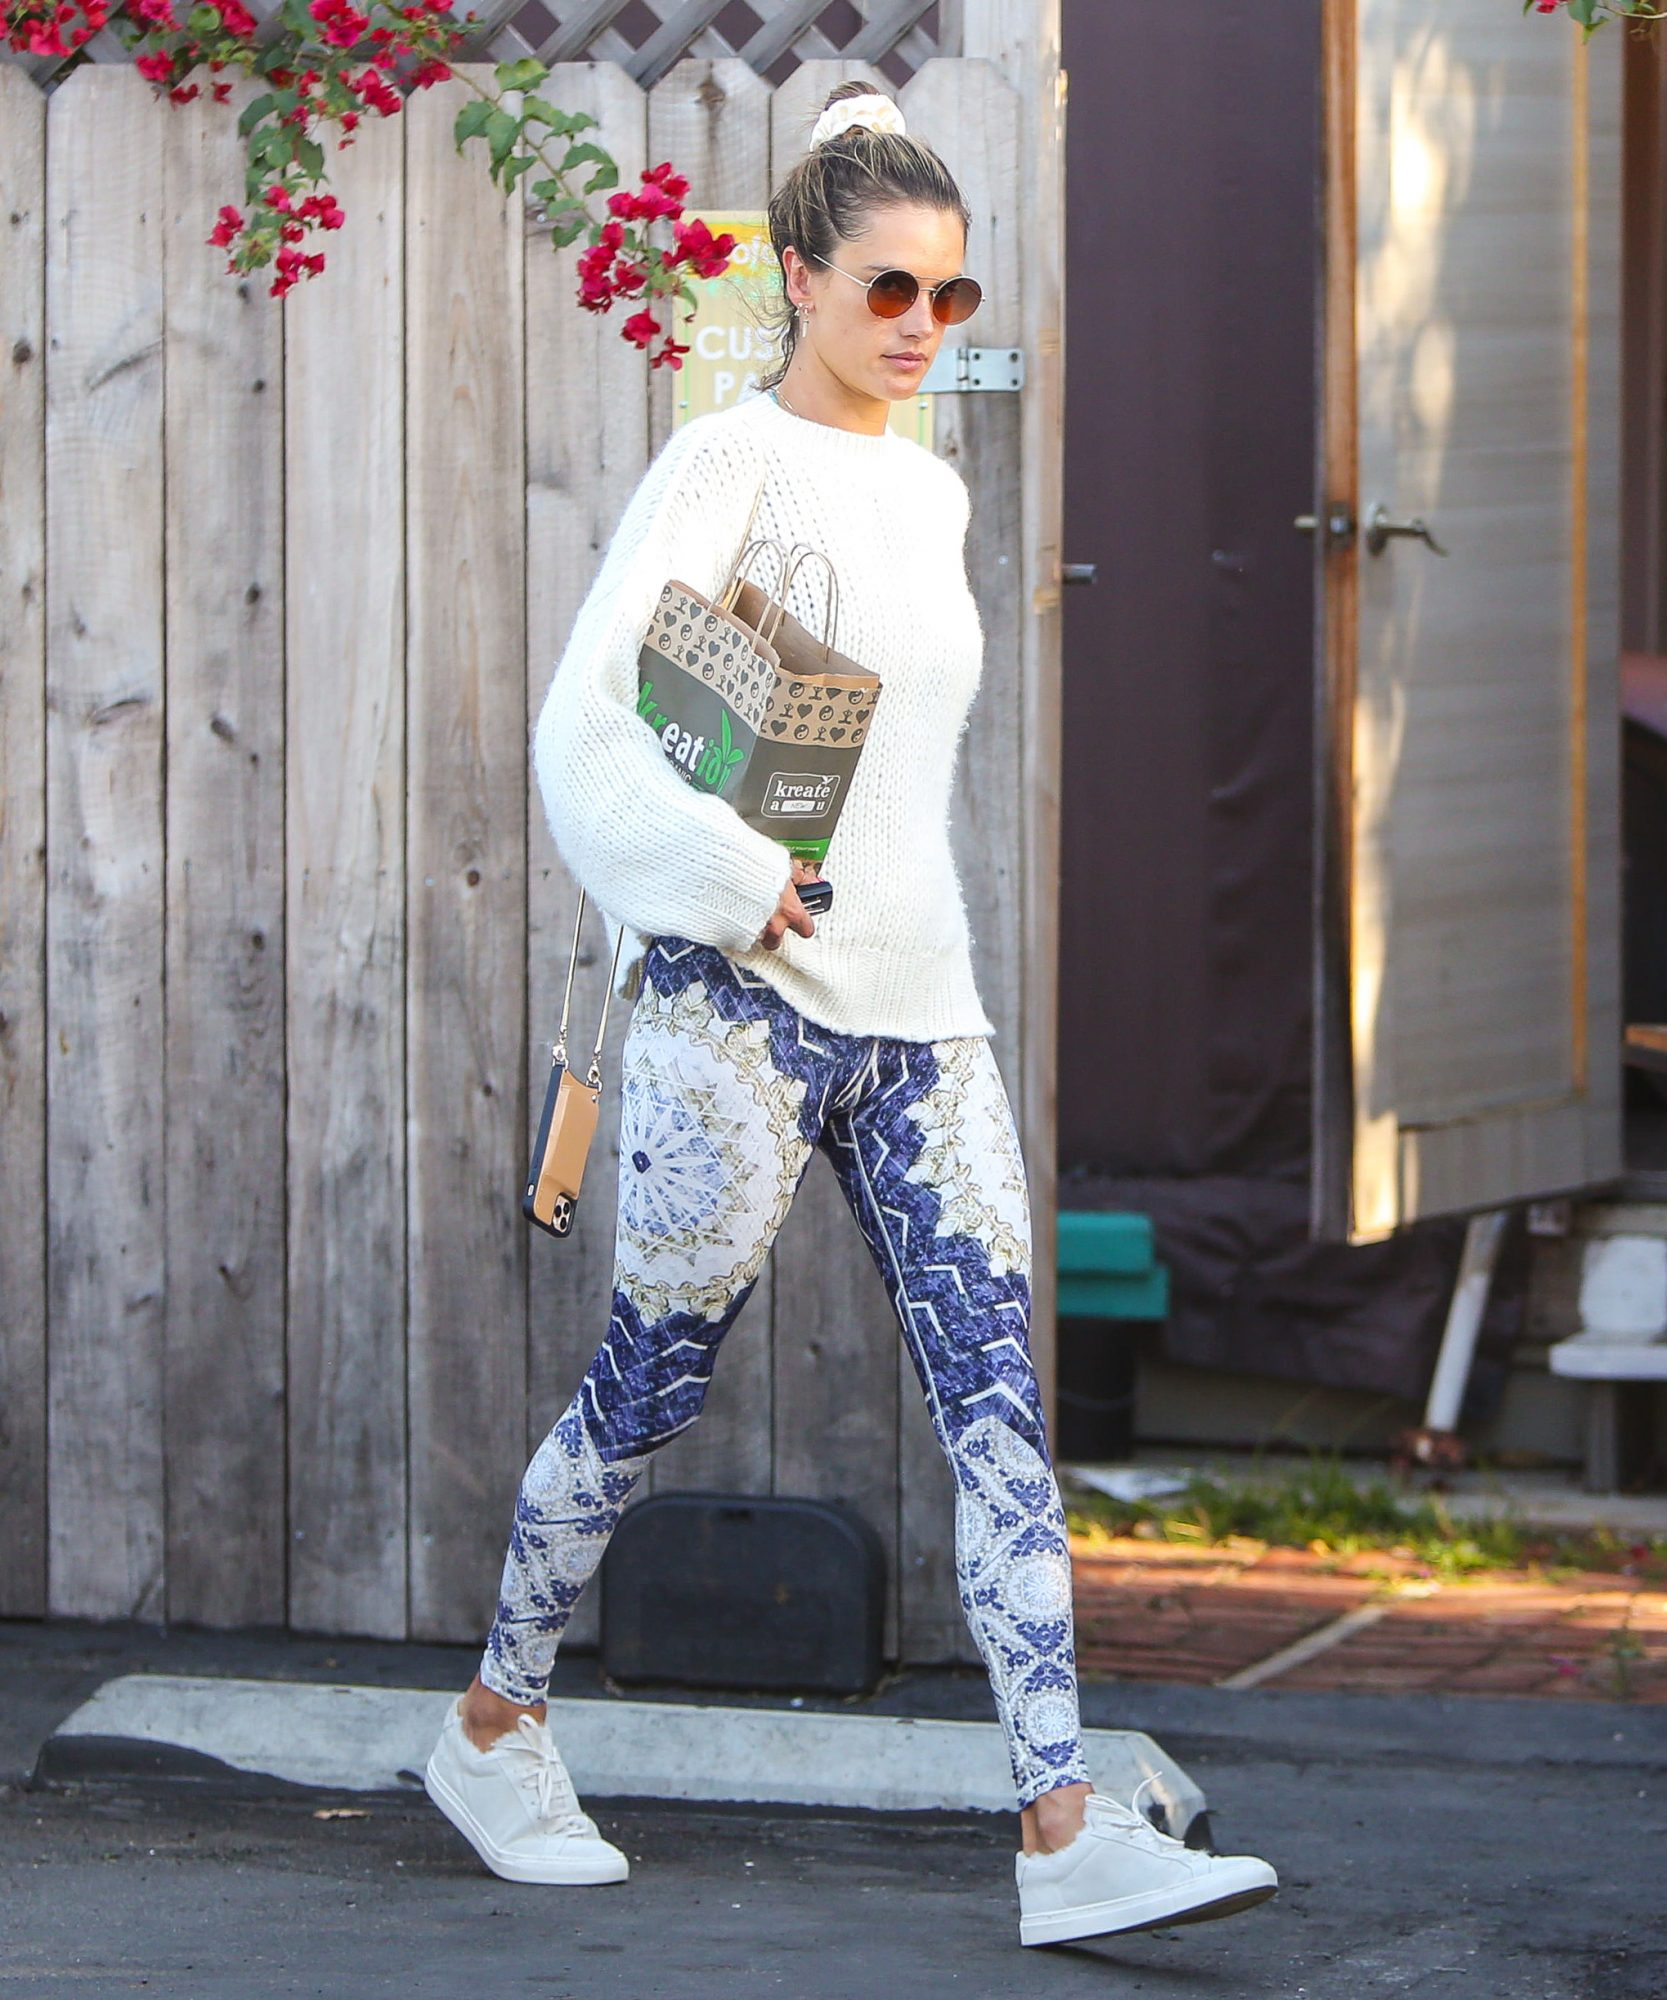 SYND: Celebrities Love This Sustainable Brand's Printed Leggings—and Right Now They're on Sale